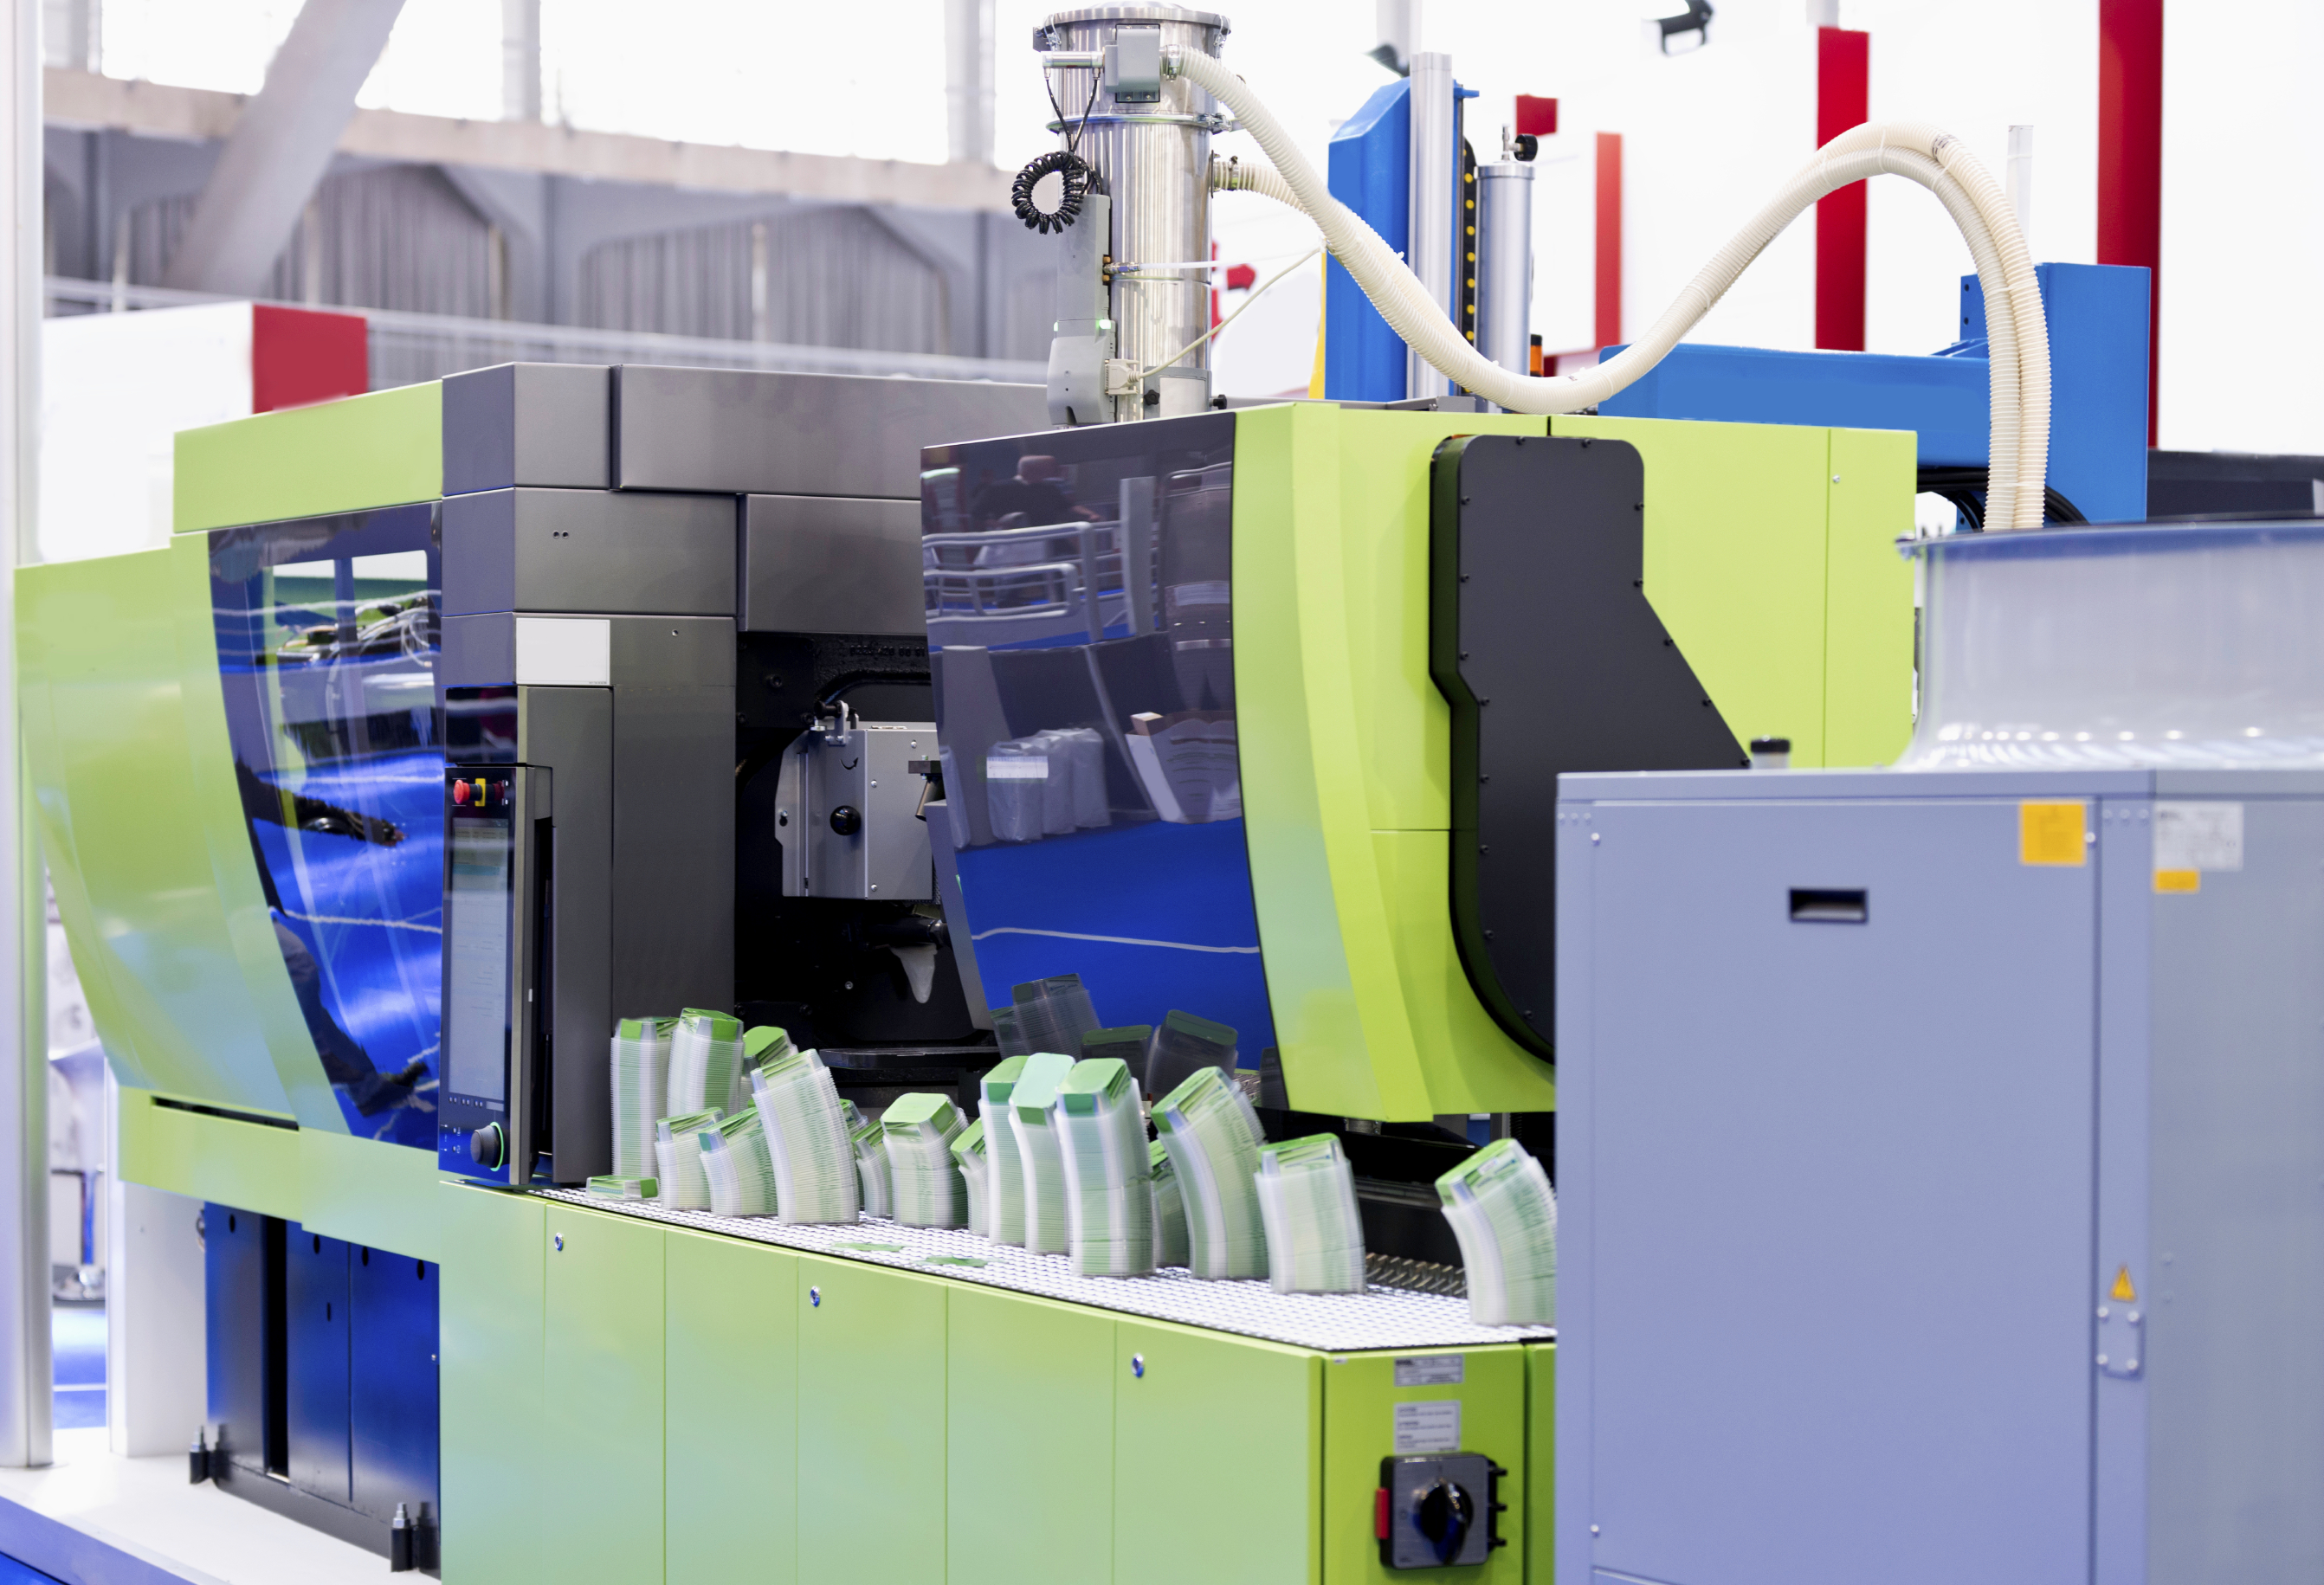 Electrical machine for plastic injection - image courtesy of Click Consulting.